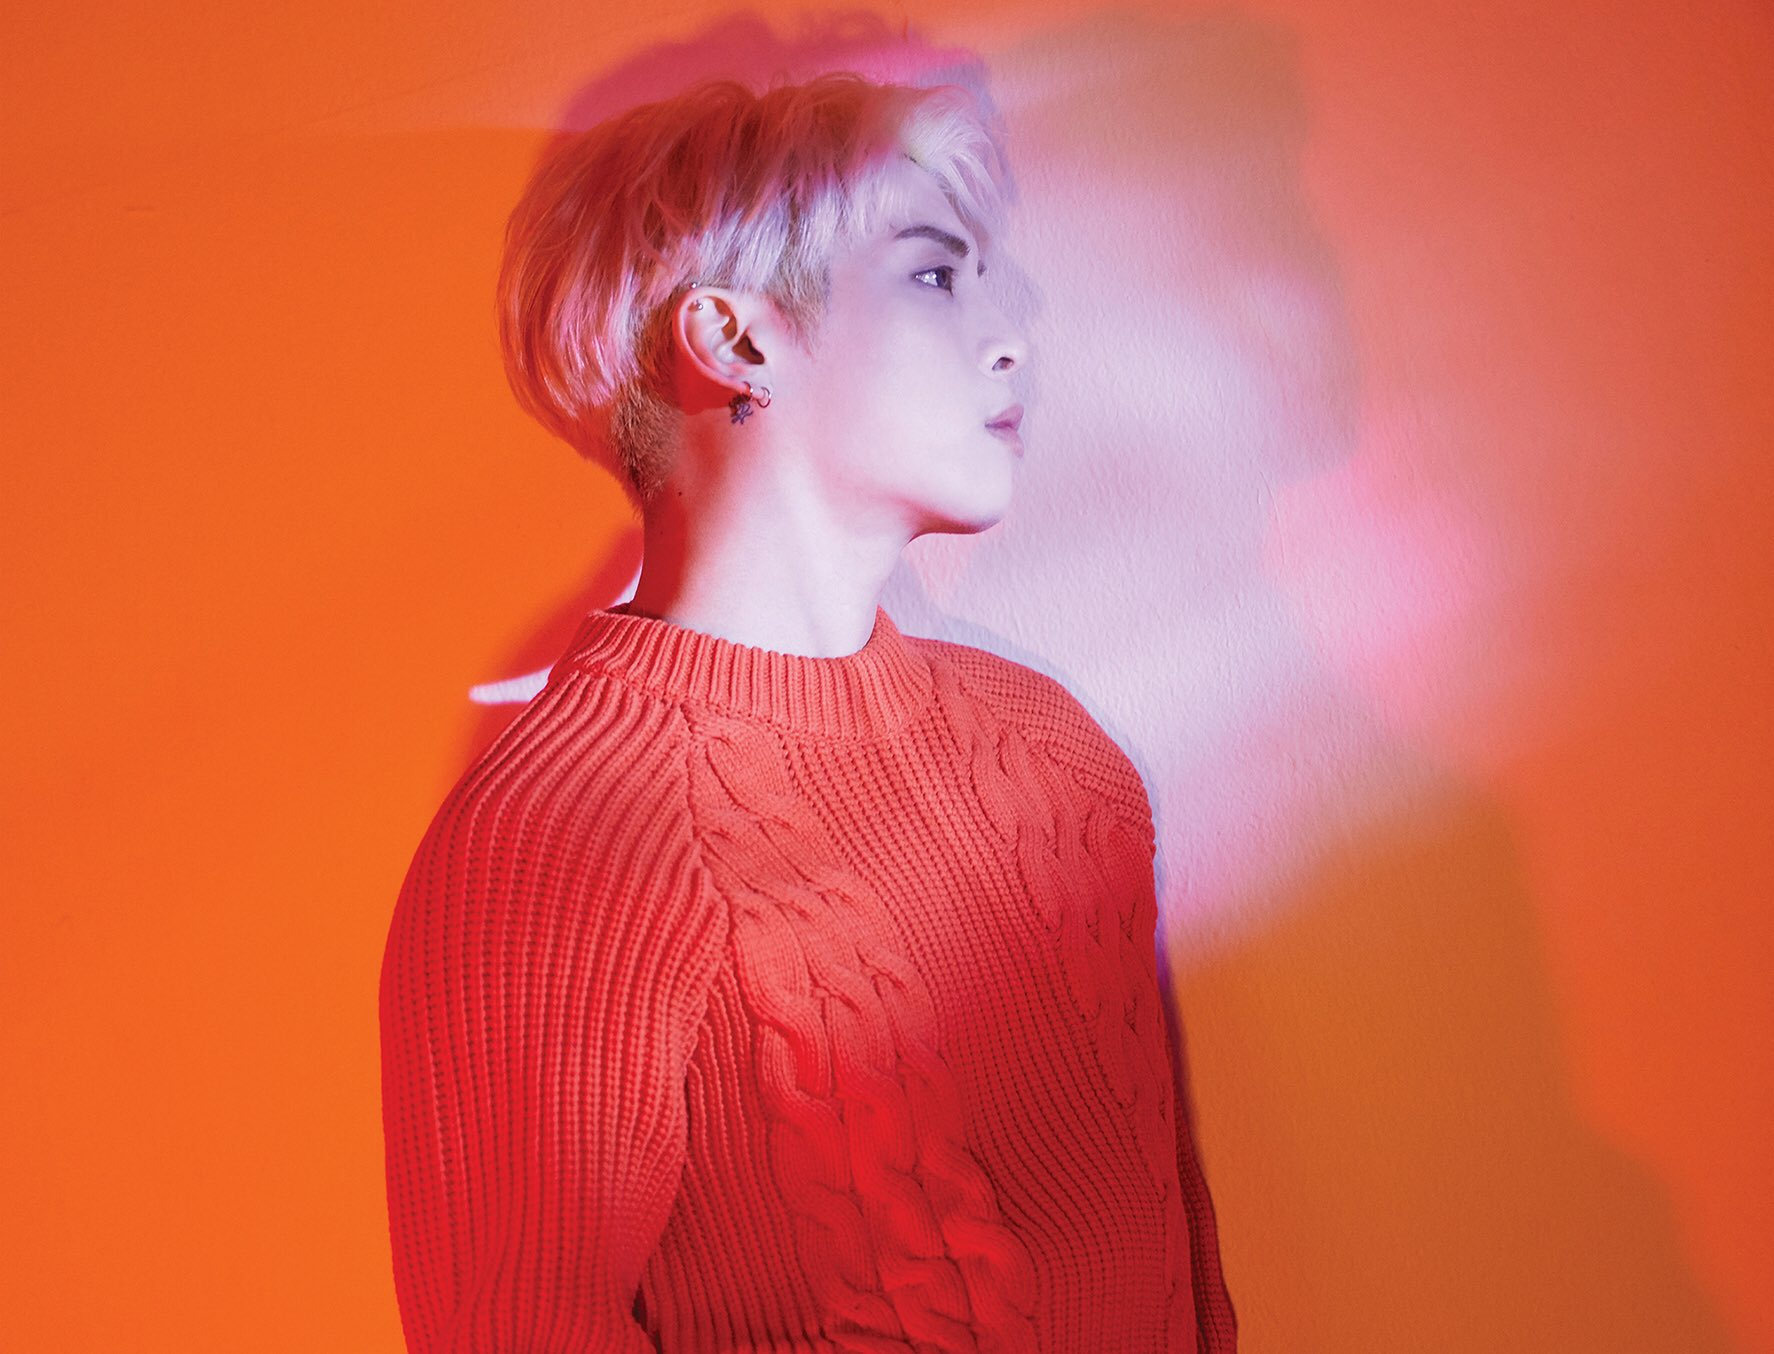 SM Entertainment Releases Late Jonghyun's Music Video for 'Shinin' '